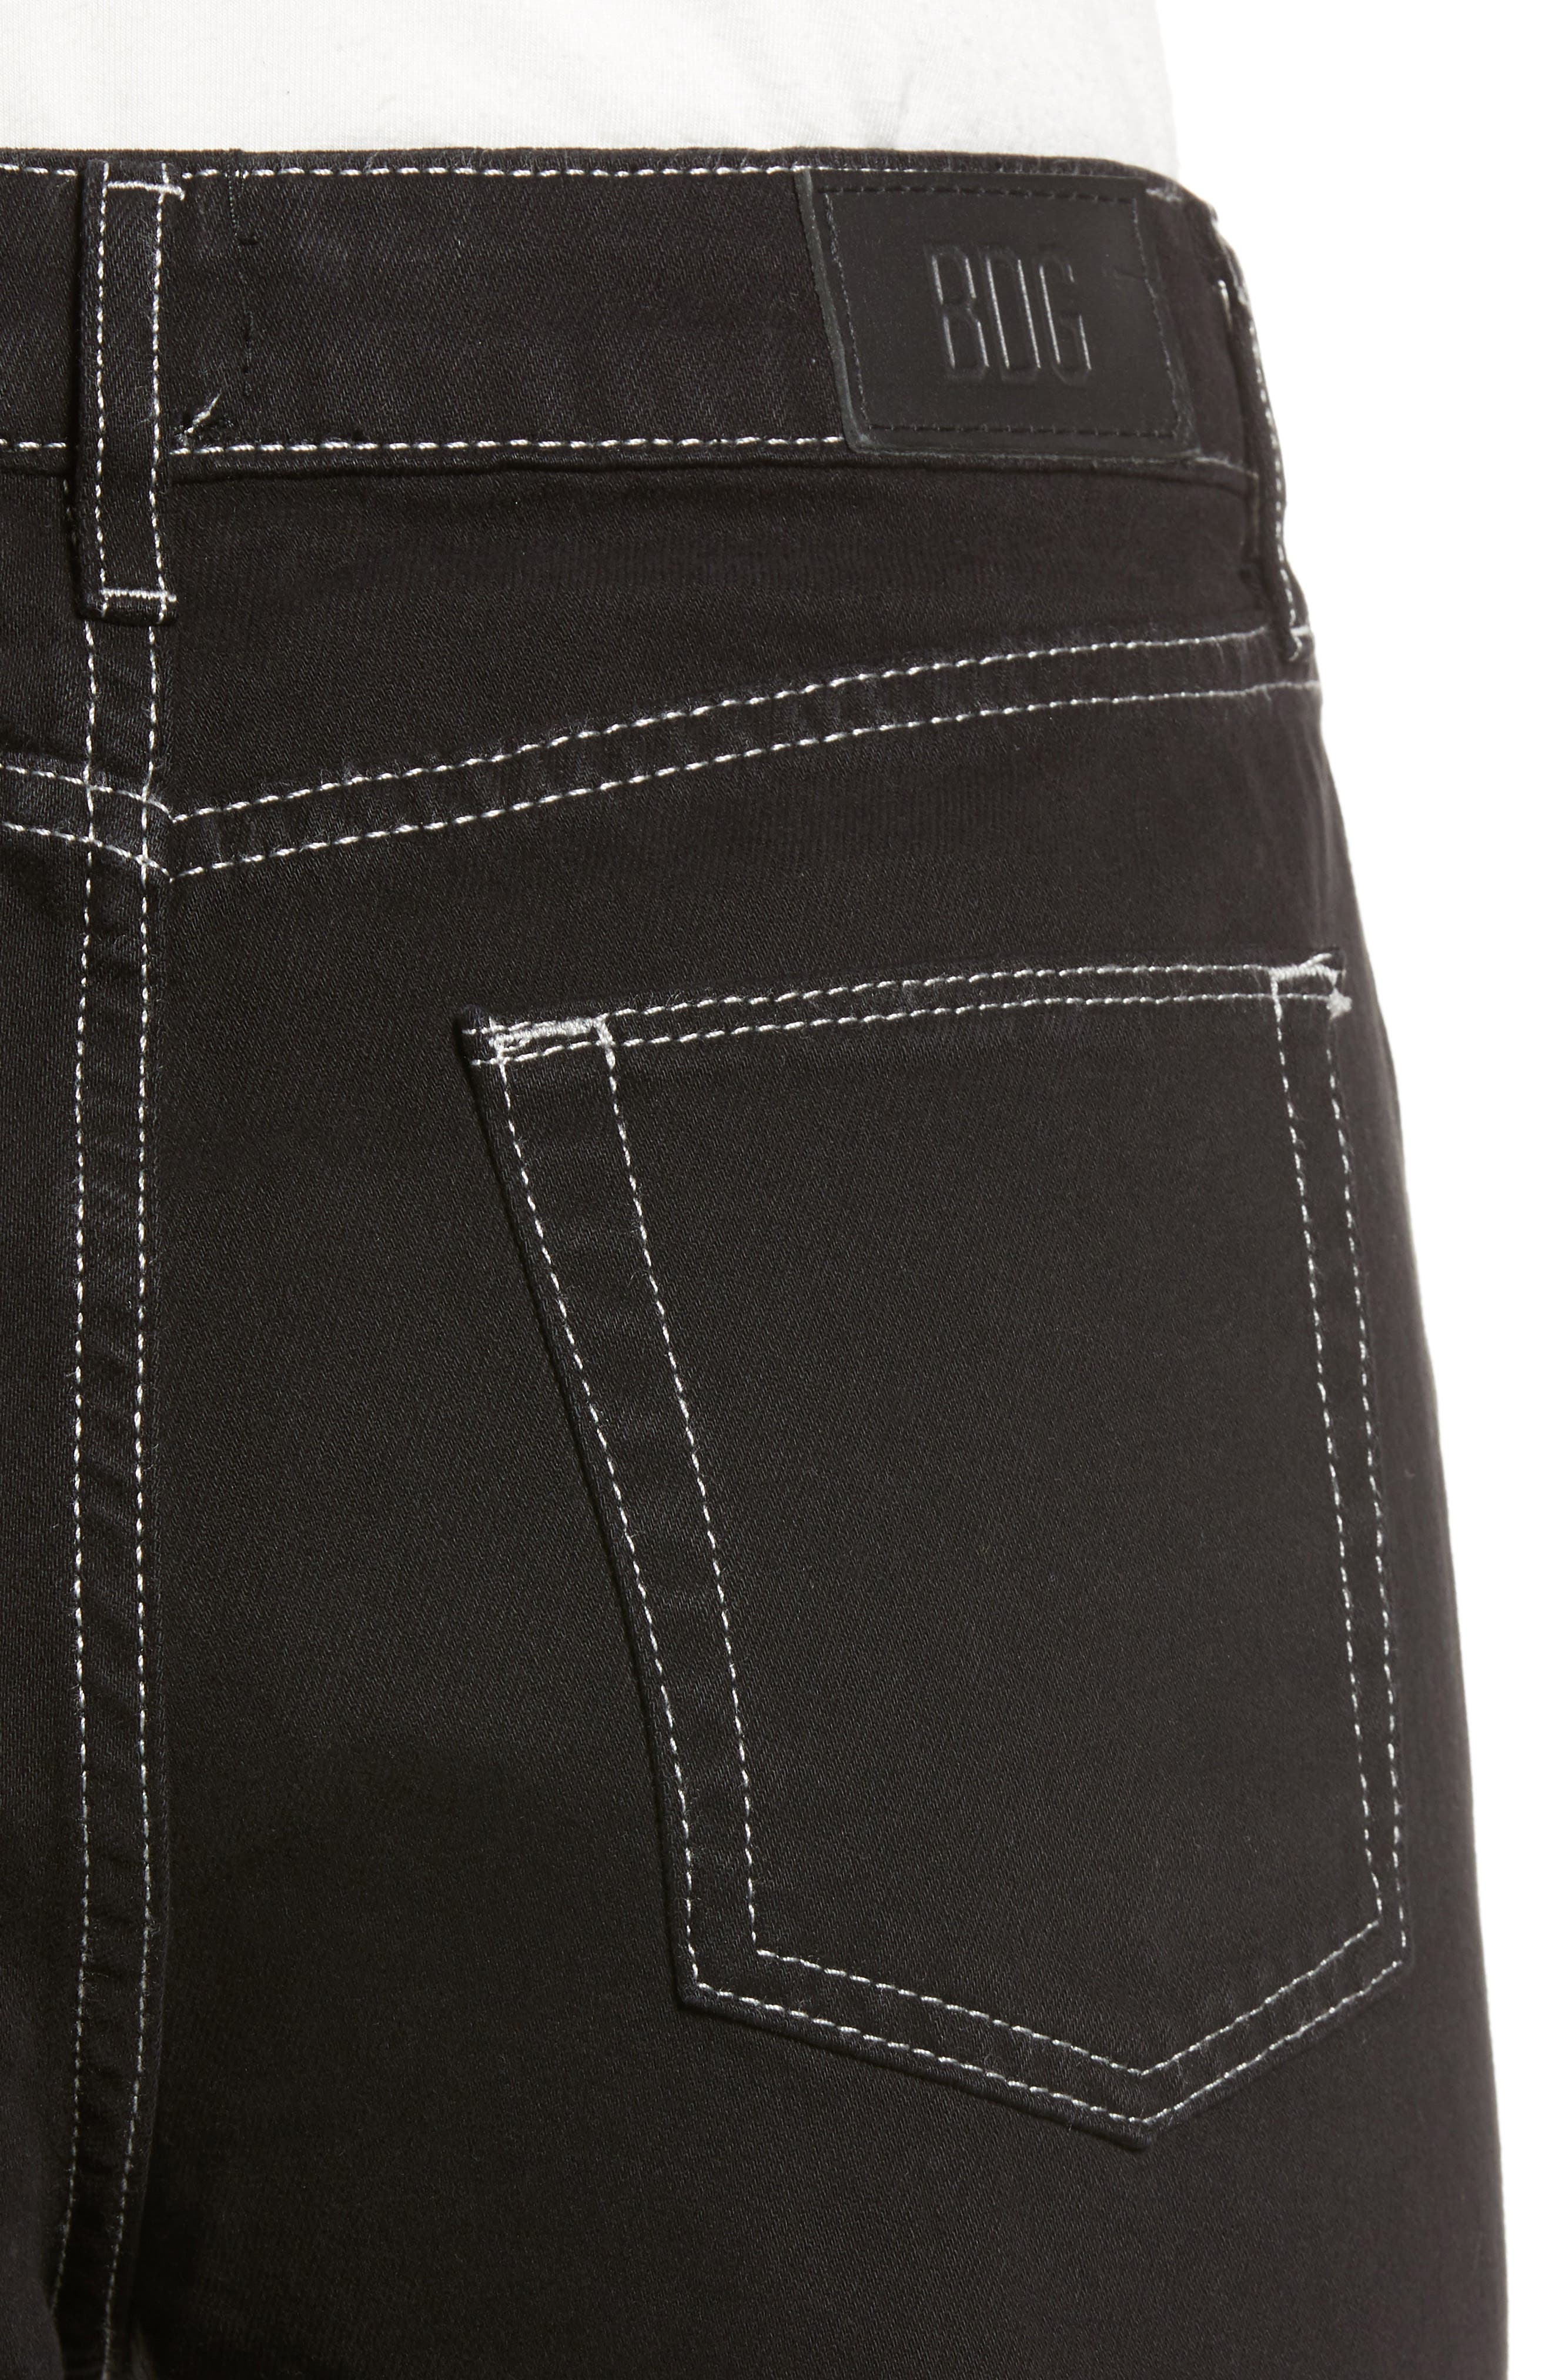 Urban Outfitters Pax High Waist Jeans,                             Alternate thumbnail 4, color,                             BLACK